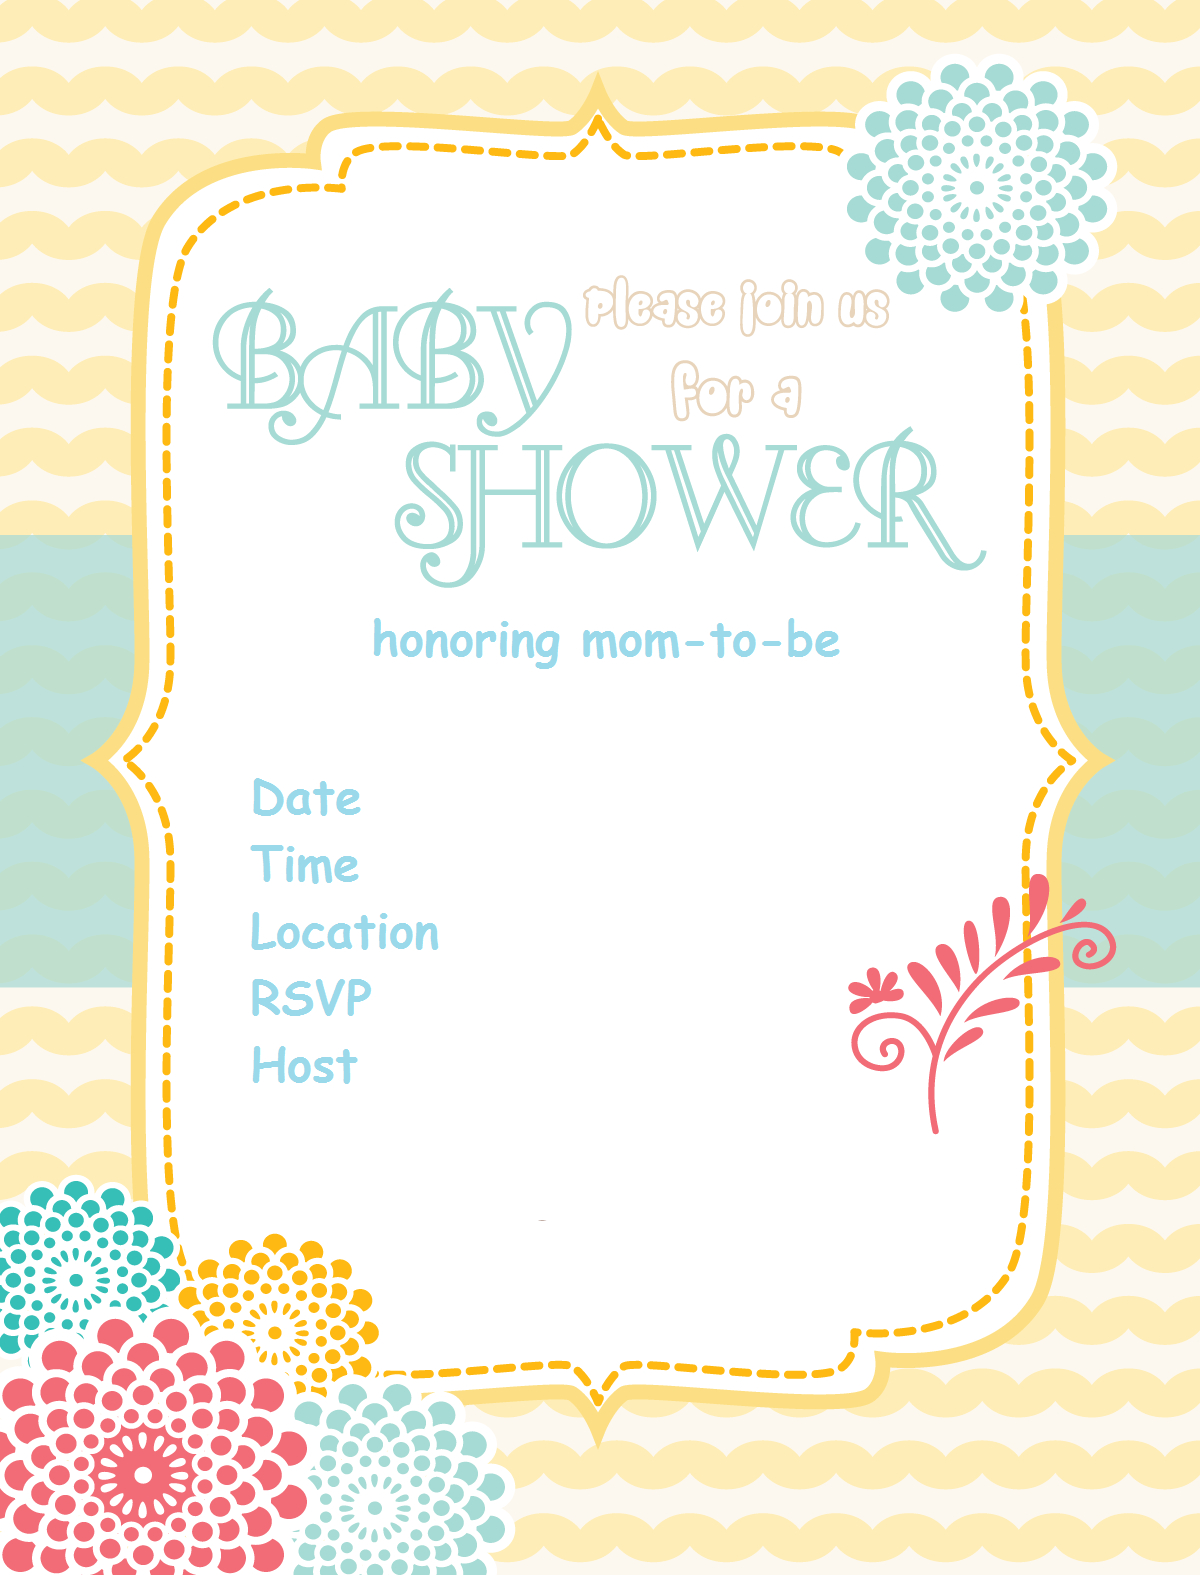 Free Printable Baby Shower Invitations - Baby Shower Ideas - Themes - Free Printable Baby Sprinkle Invitations